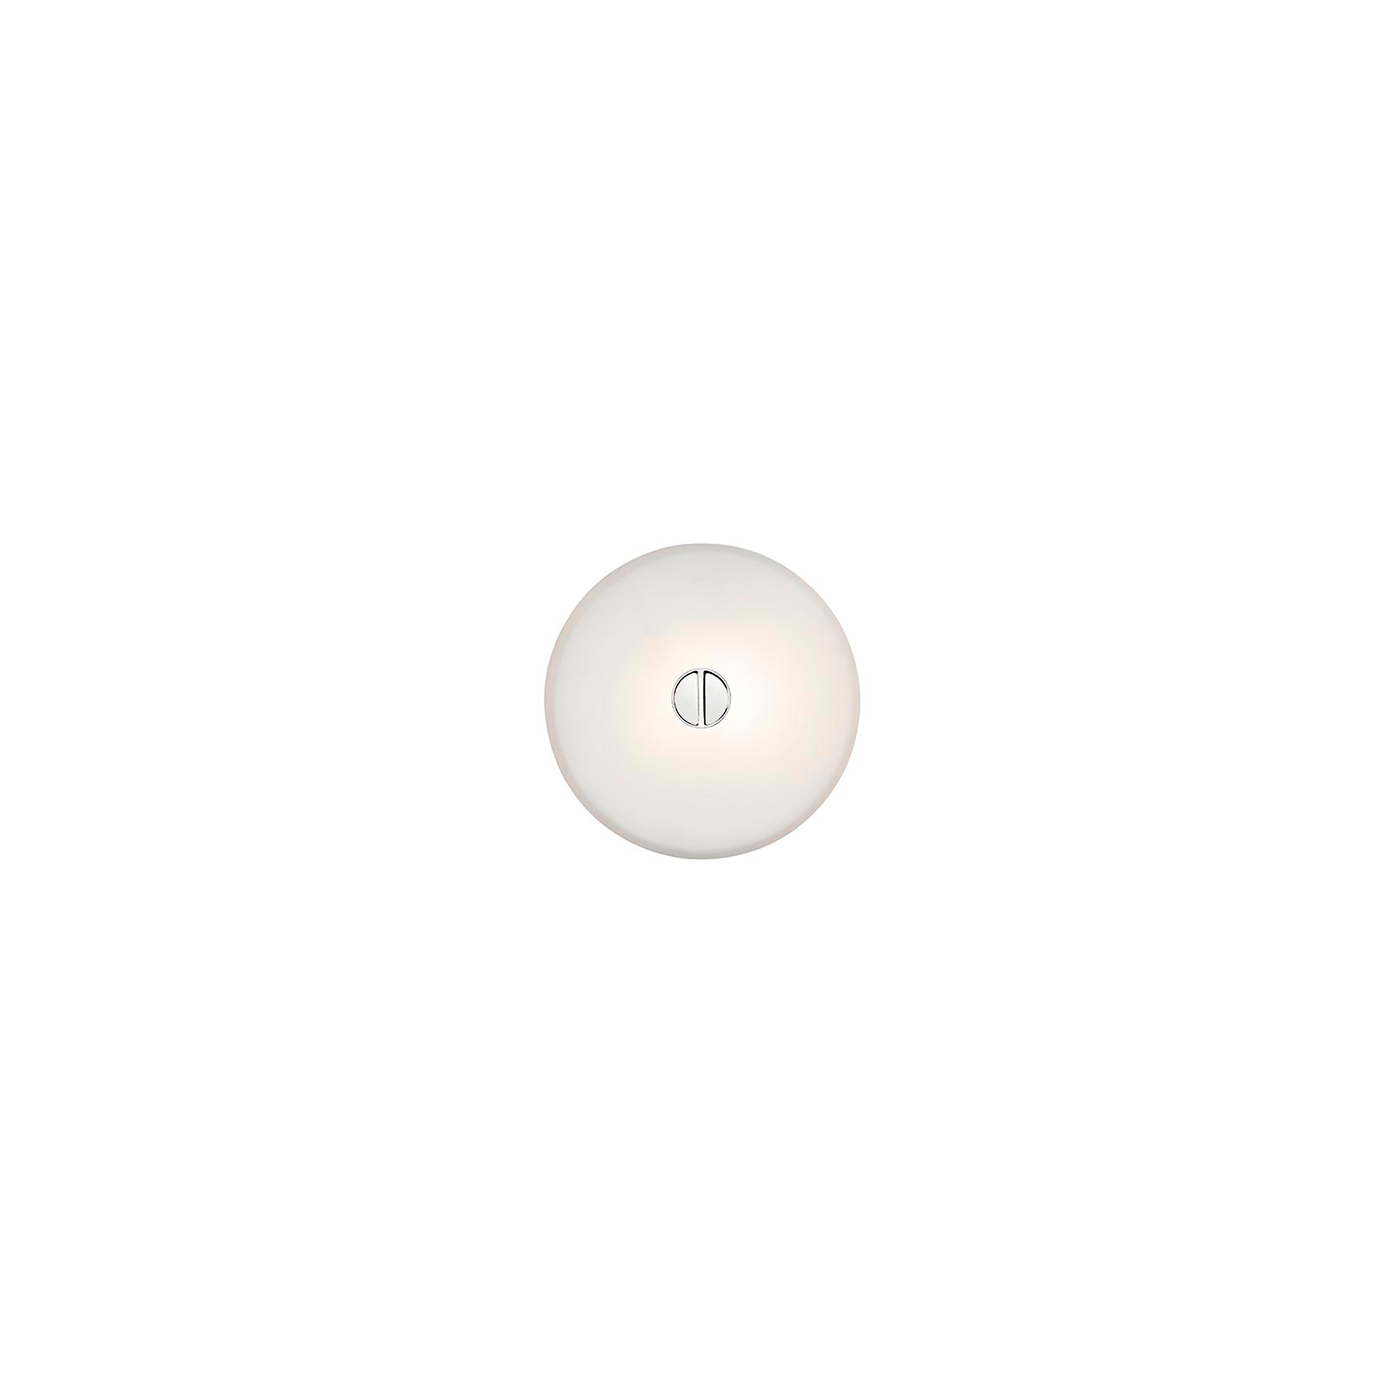 Flos Mini Button - Asteya.by